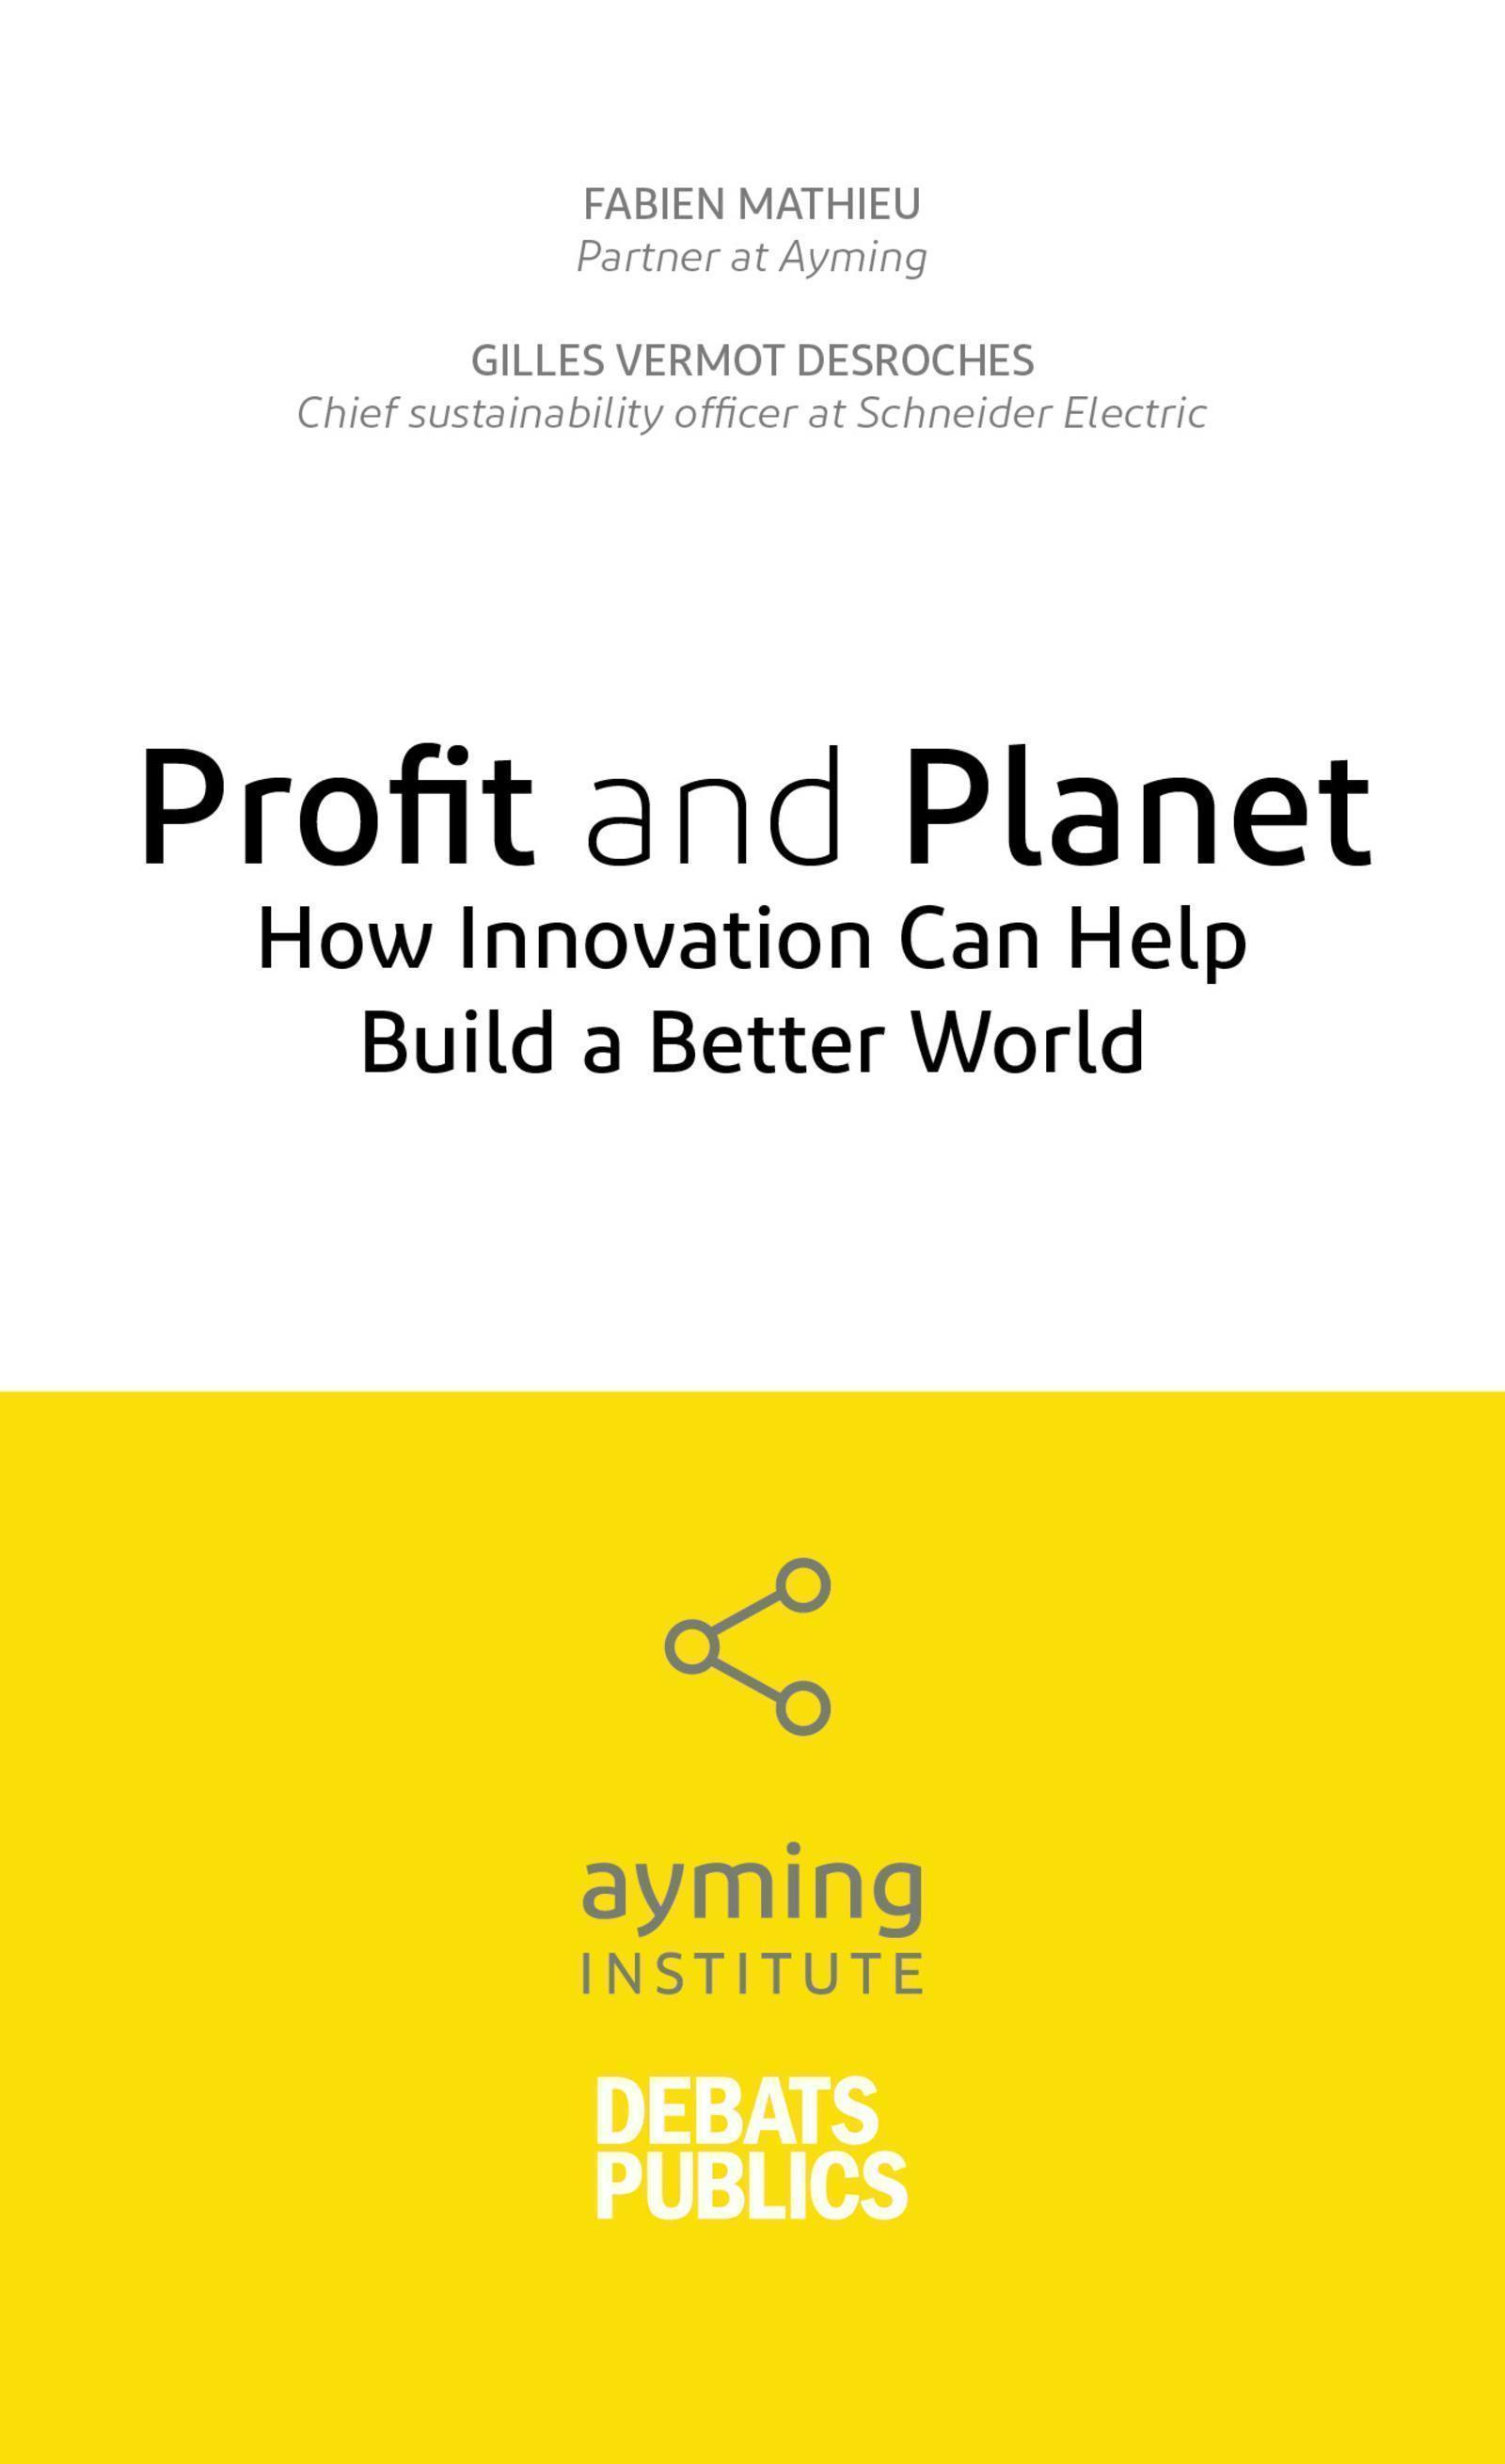 PROFIT AND PLANET - HOW INNOVATION CAN HELP BUILD A BETTER WORLD